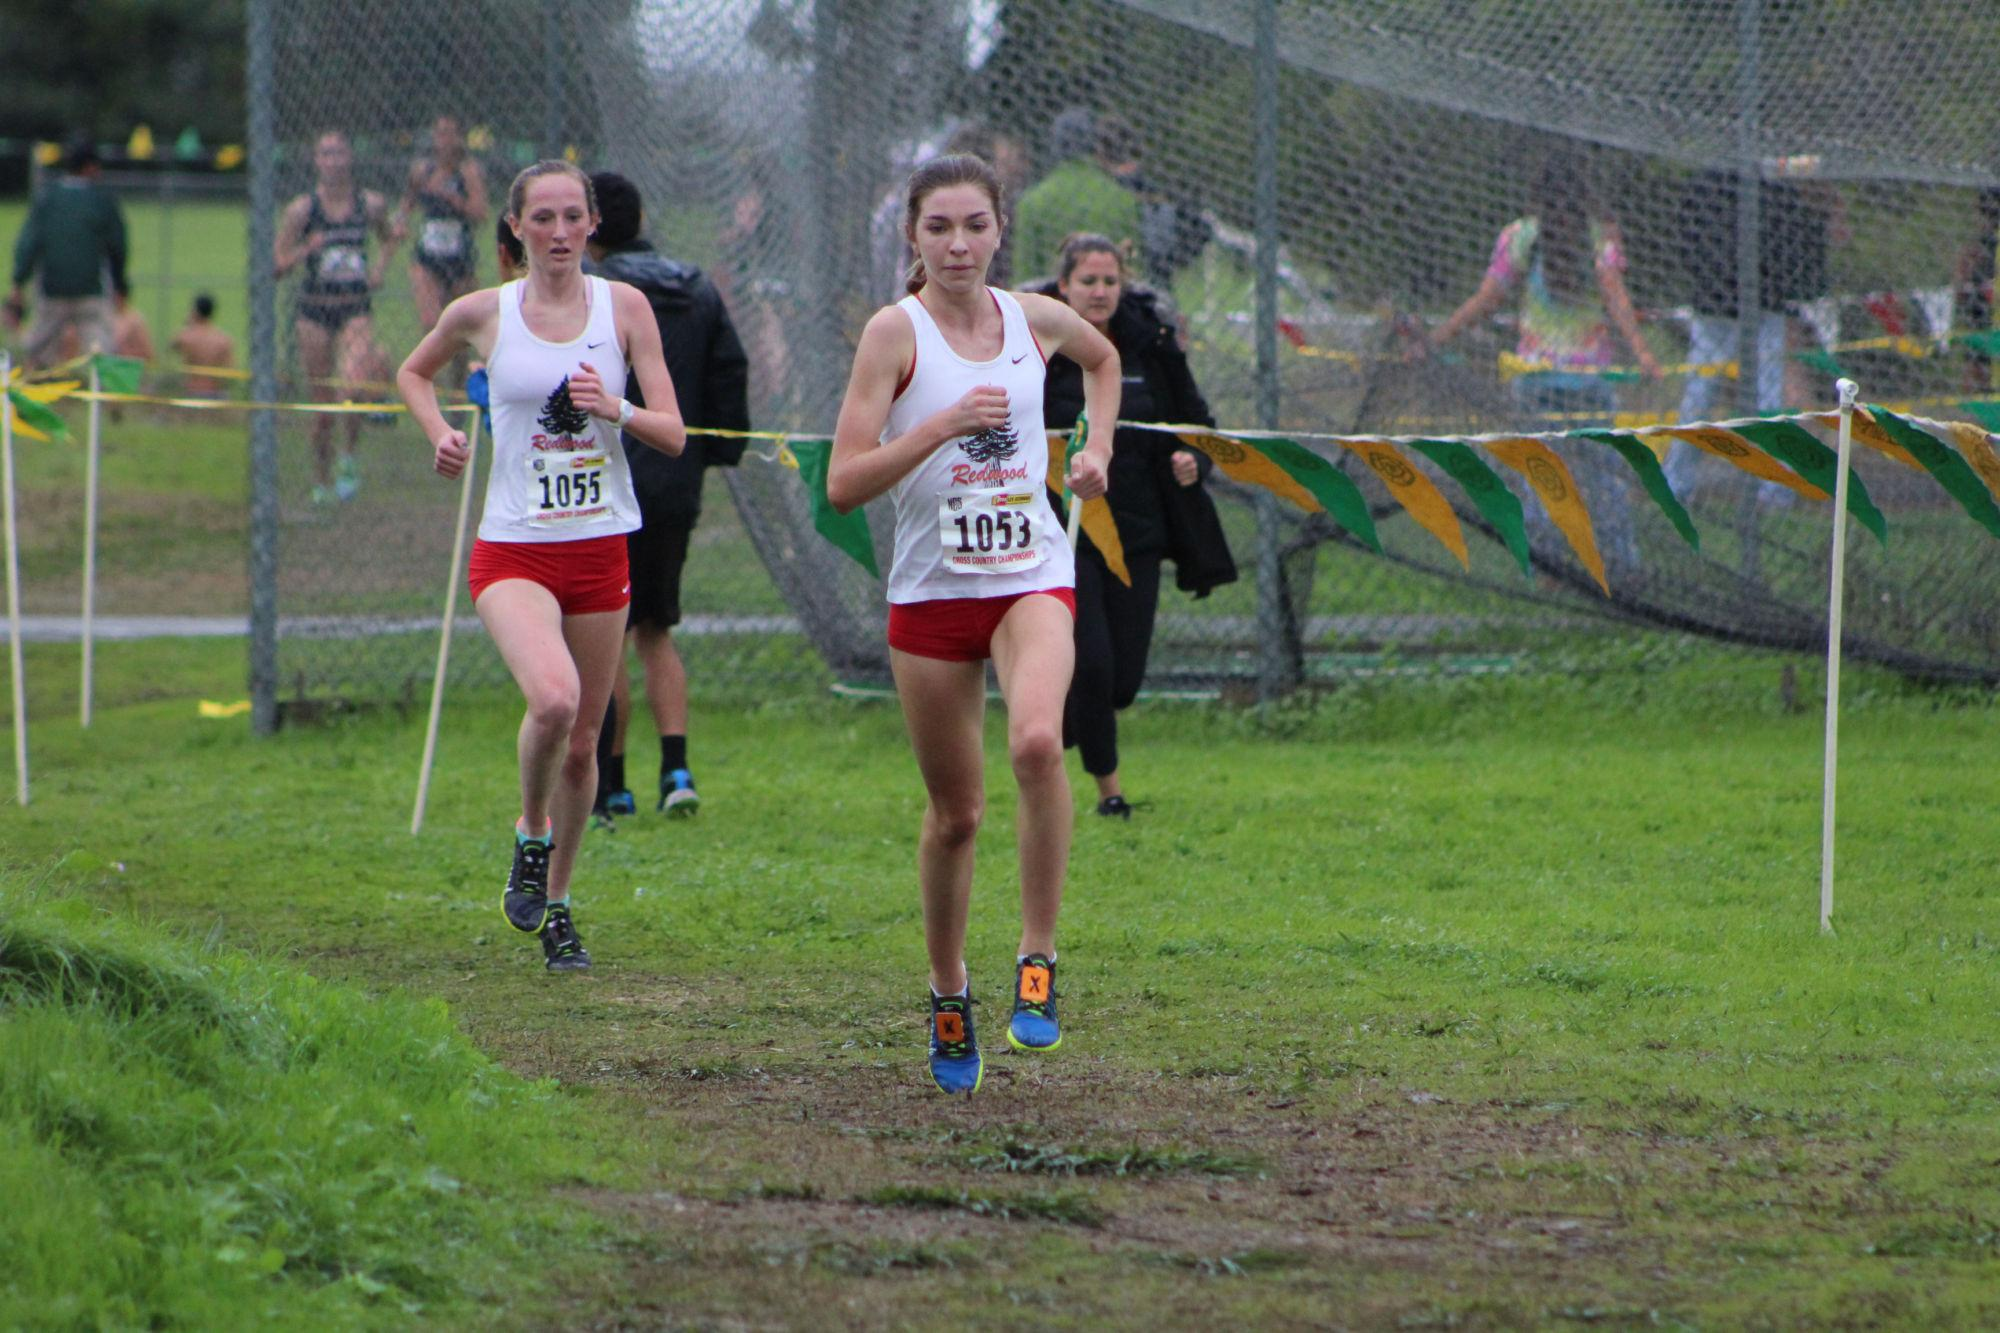 Senior Glennis Murphy and Junior Gillian Wagner break away from the pack of runners on their way to their first and second place finishes, respectively, at the NCS meet